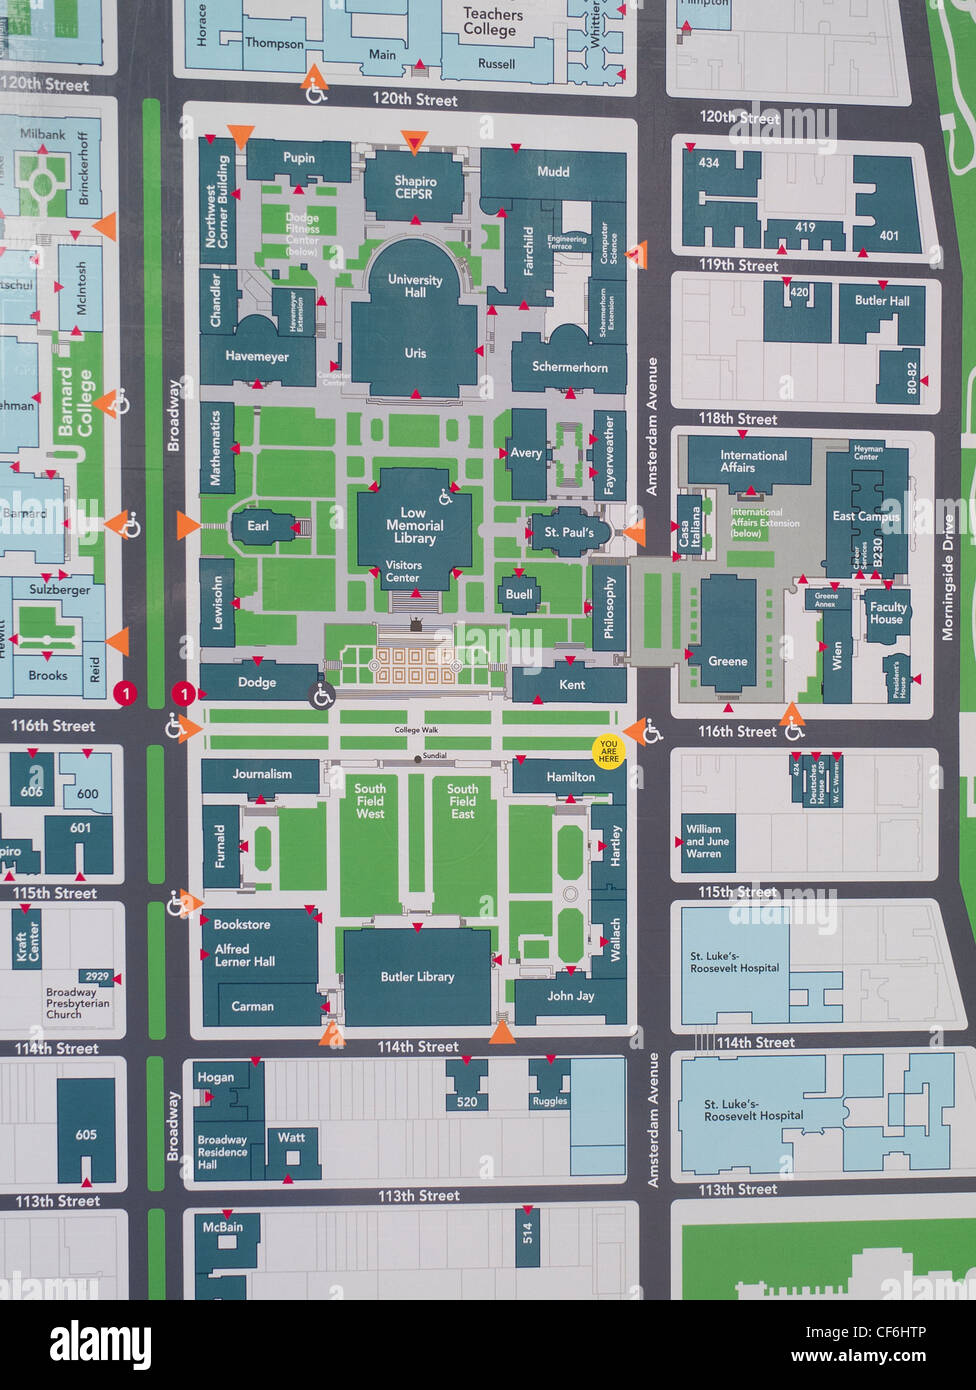 Campus Map Stock Photos  Campus Map Stock Images Alamy - Map of usc columbia